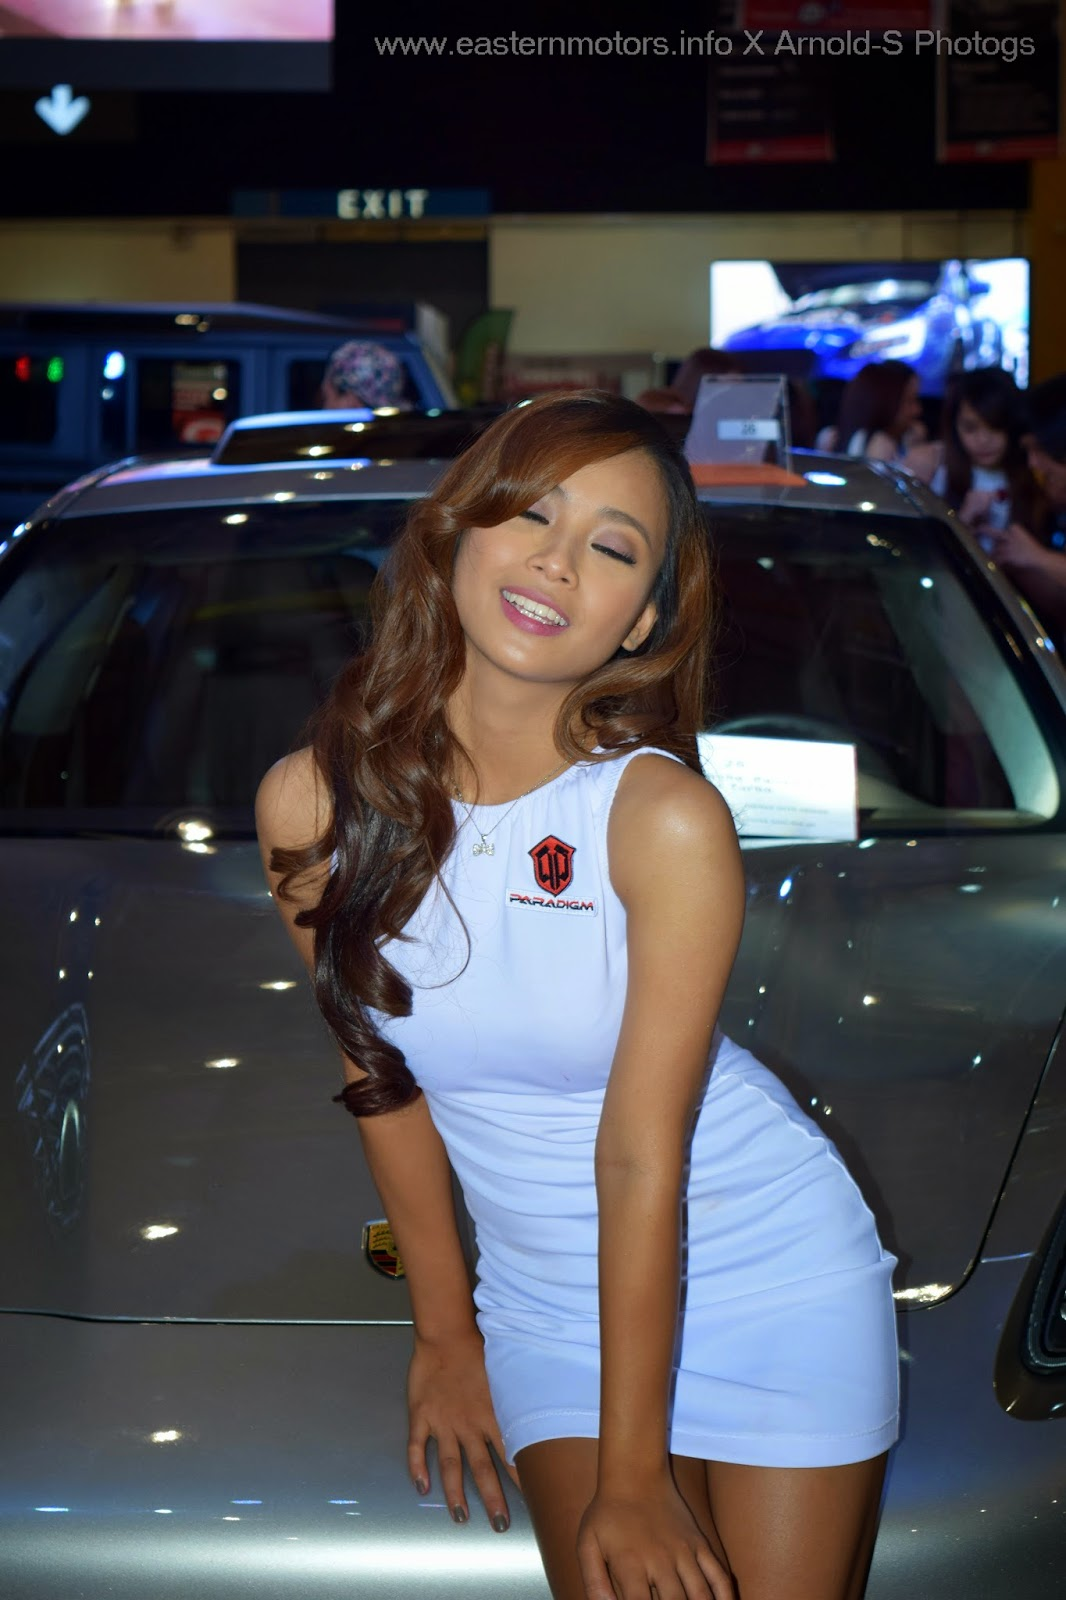 Boobs fuck car show pics and girls chest interacial